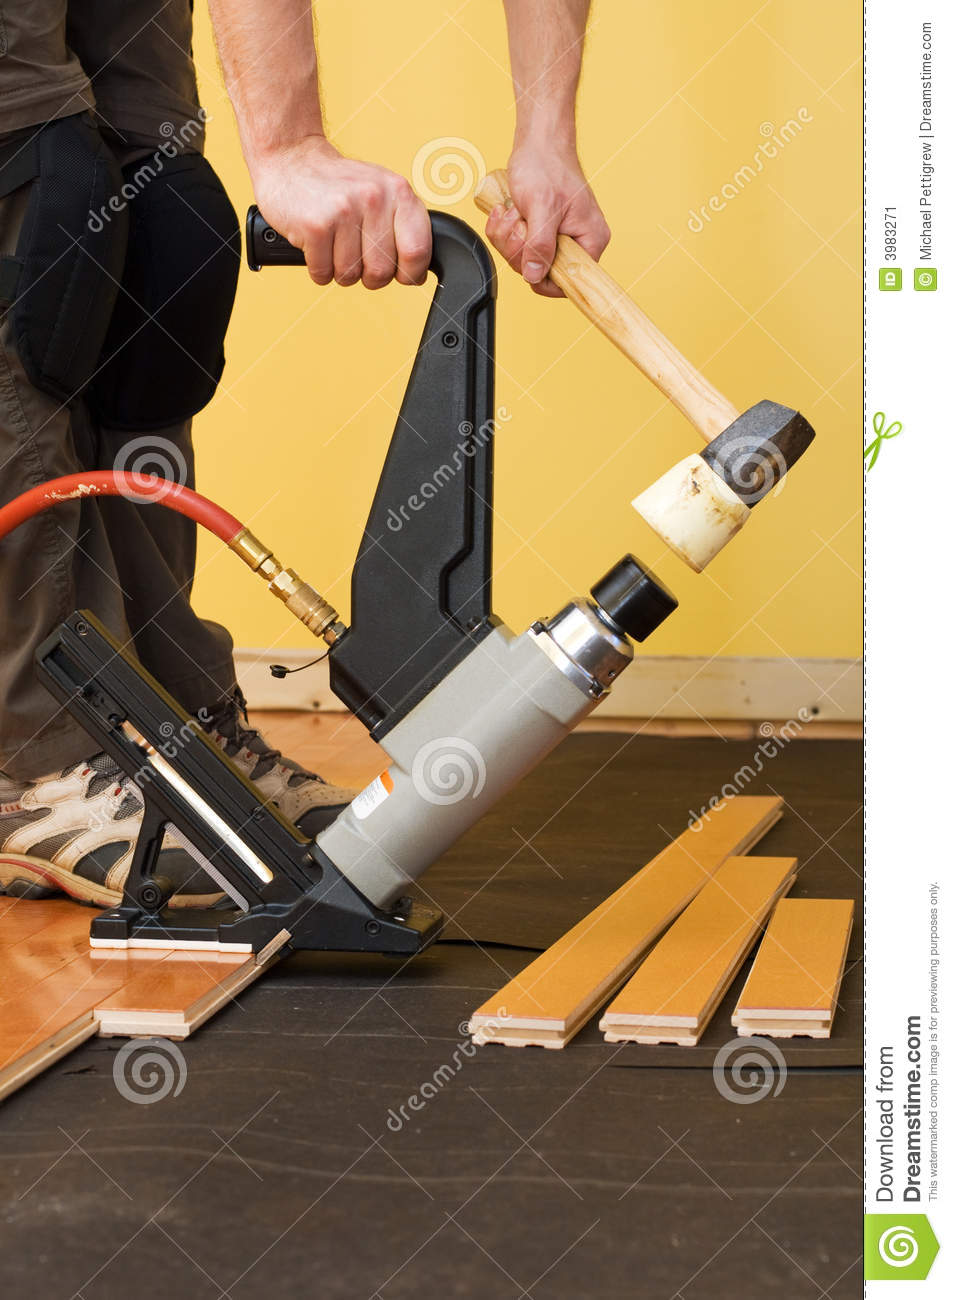 Hardwood Floor Installation Stock Image Image Of Home Prefinished